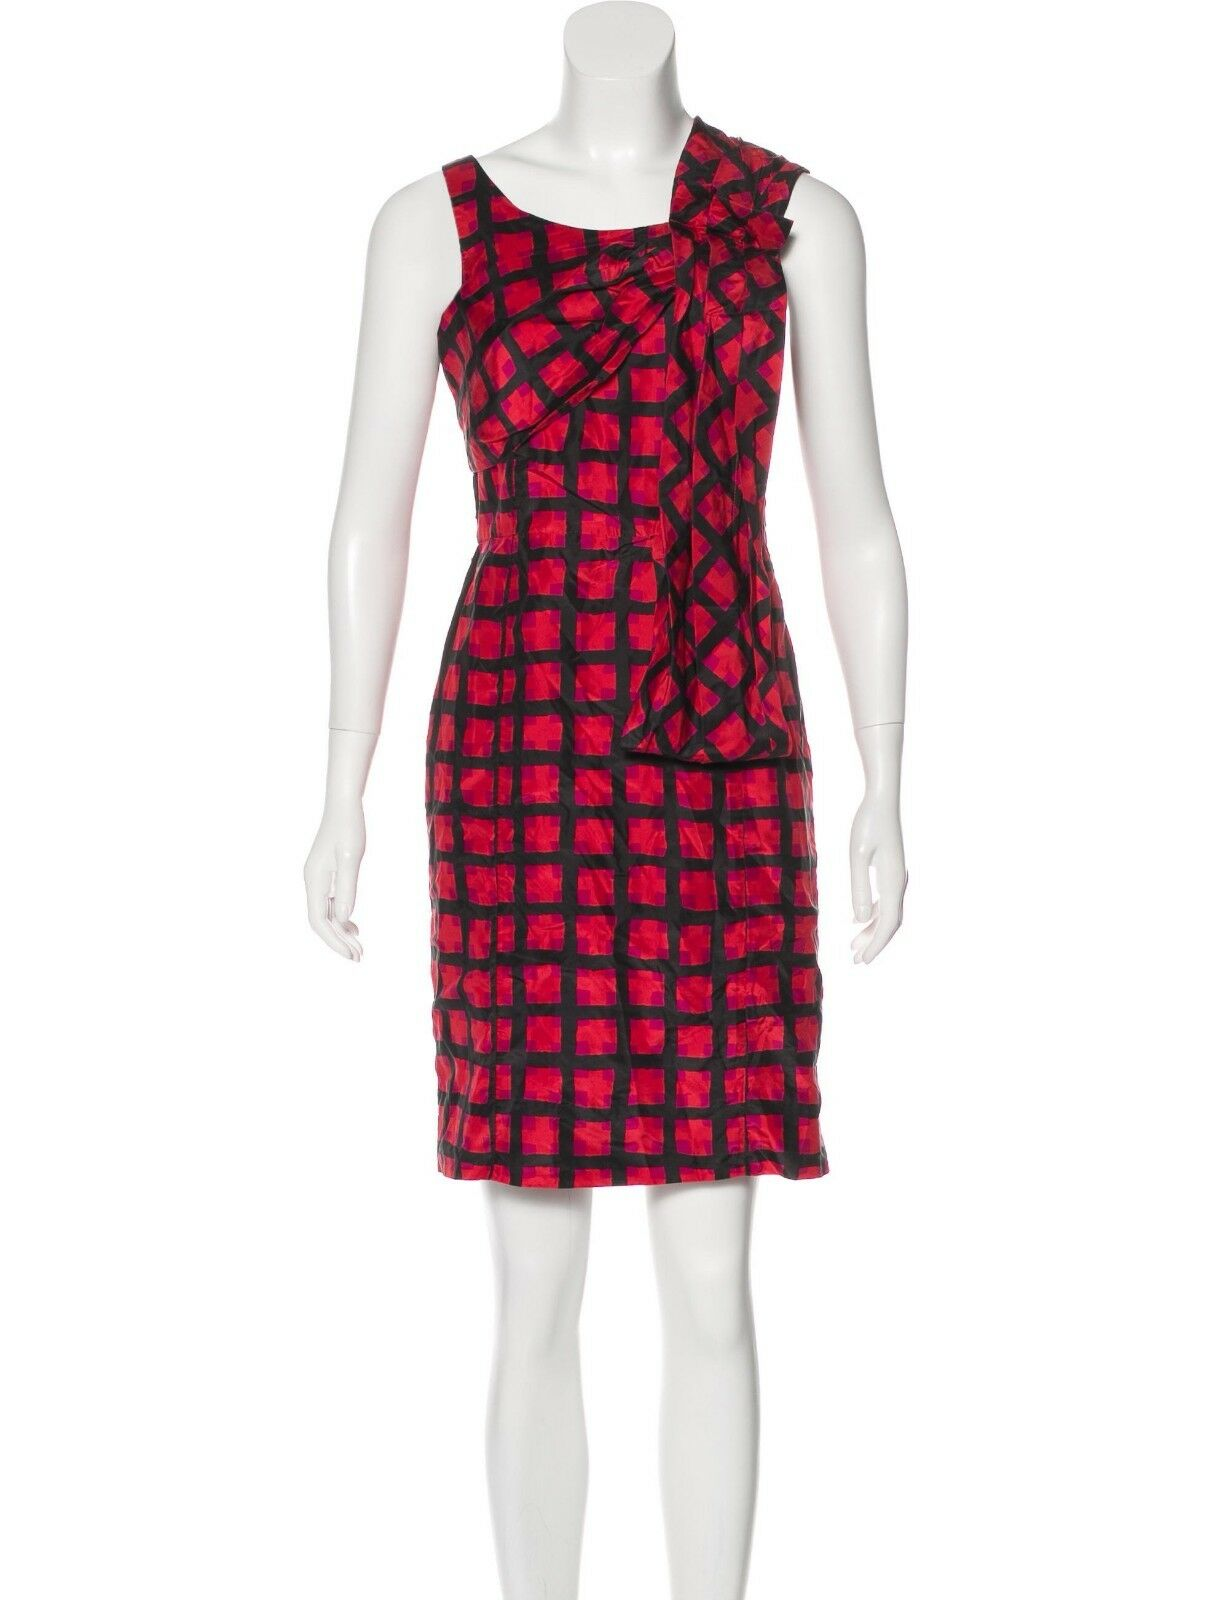 fb643a6cb5 Marc by Marc Jacobs Dress Size 4 Printed Silk nwouun22784-Dresses ...